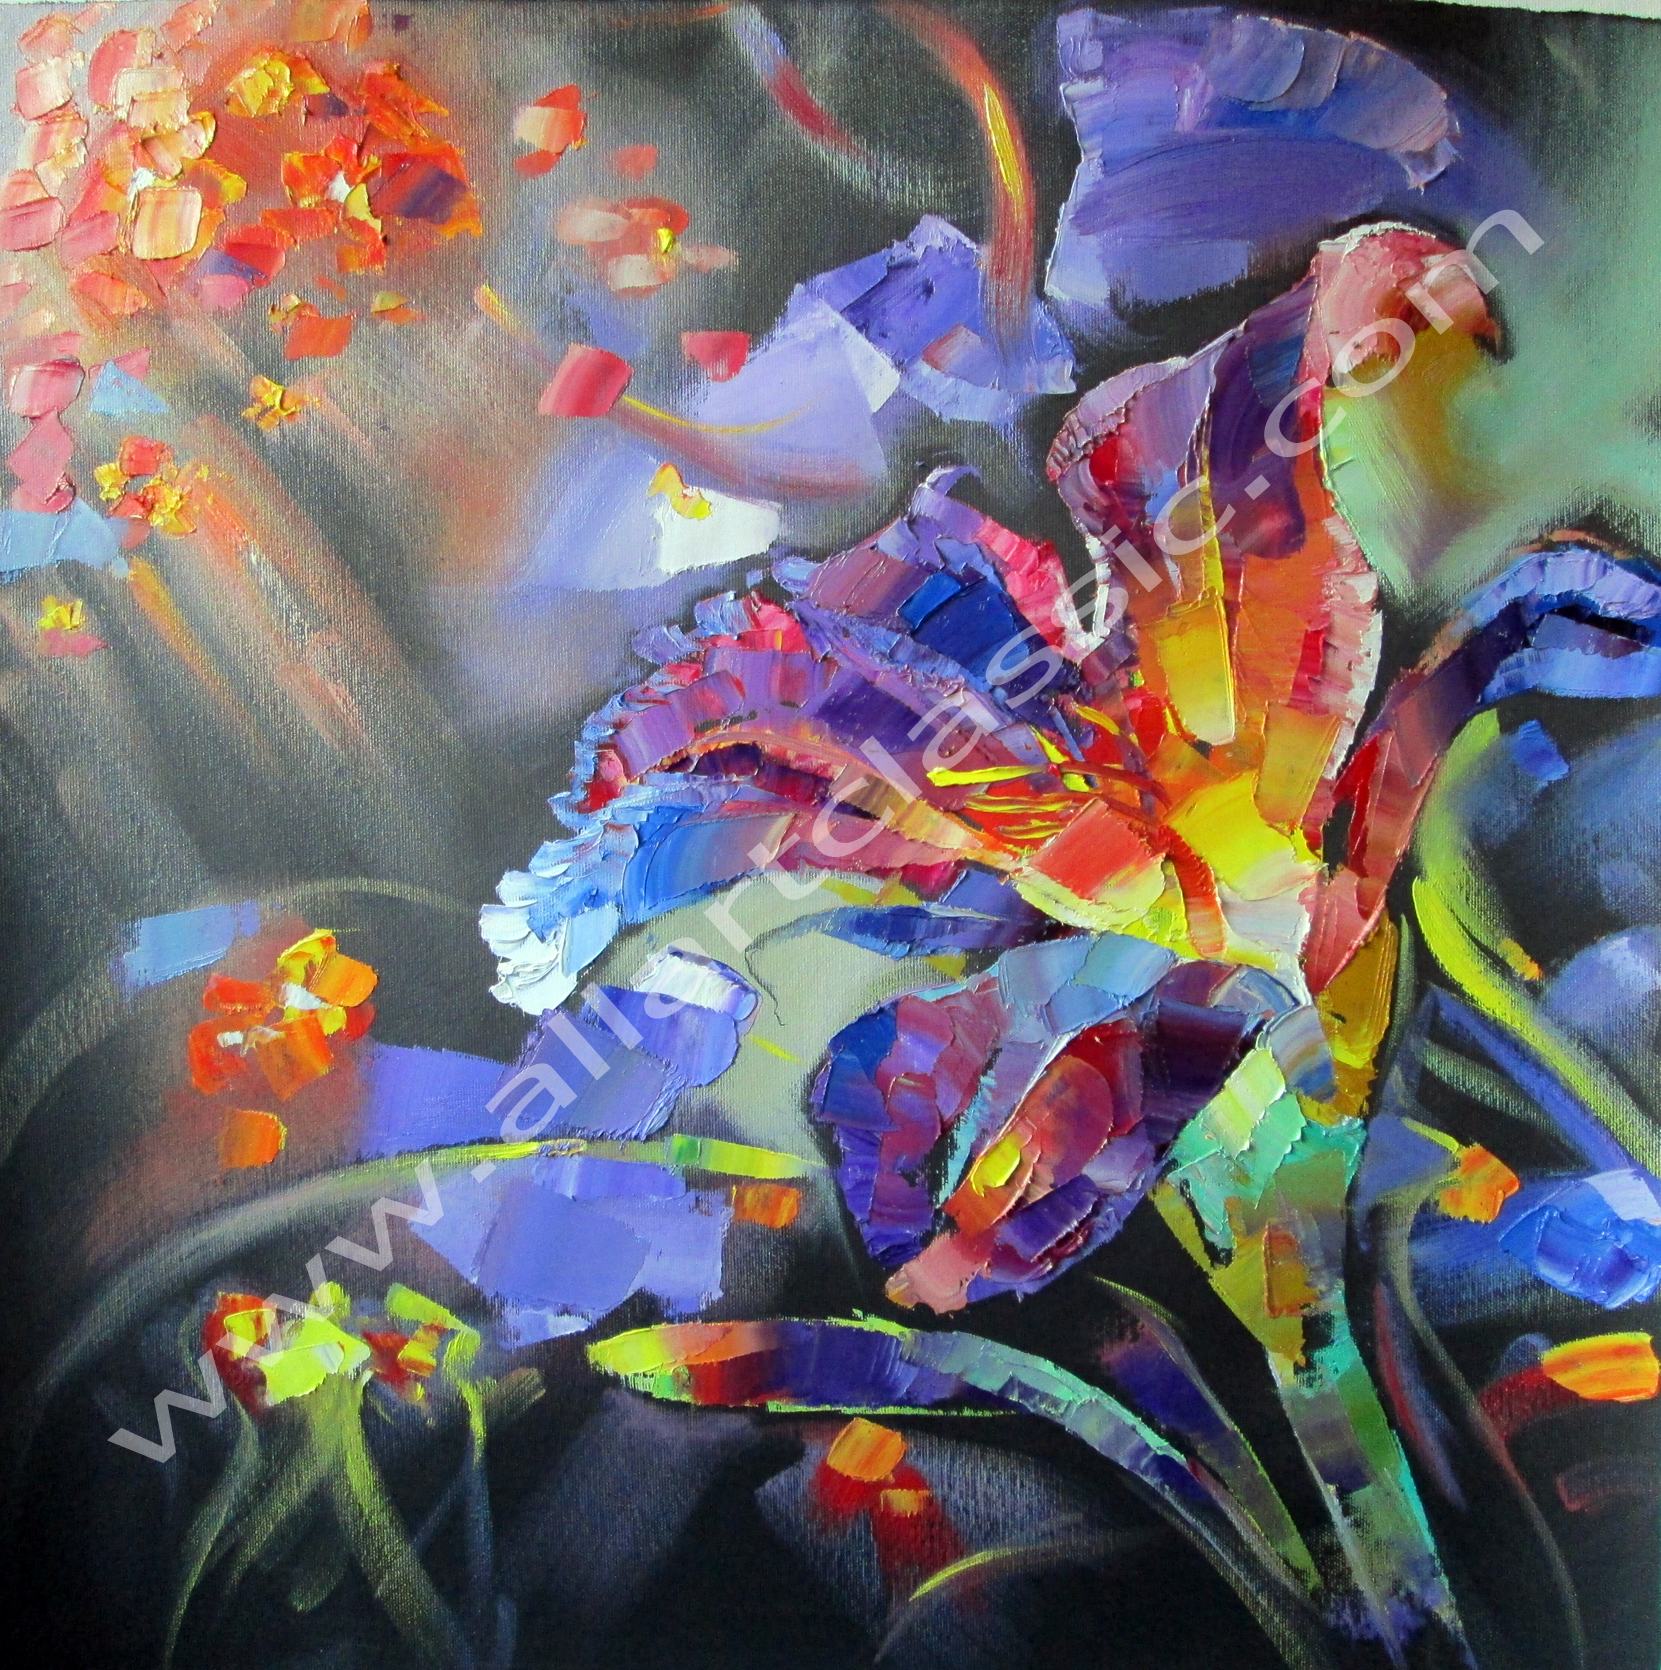 Acrylic paintings of irises best painting 2018 for Best mural paint